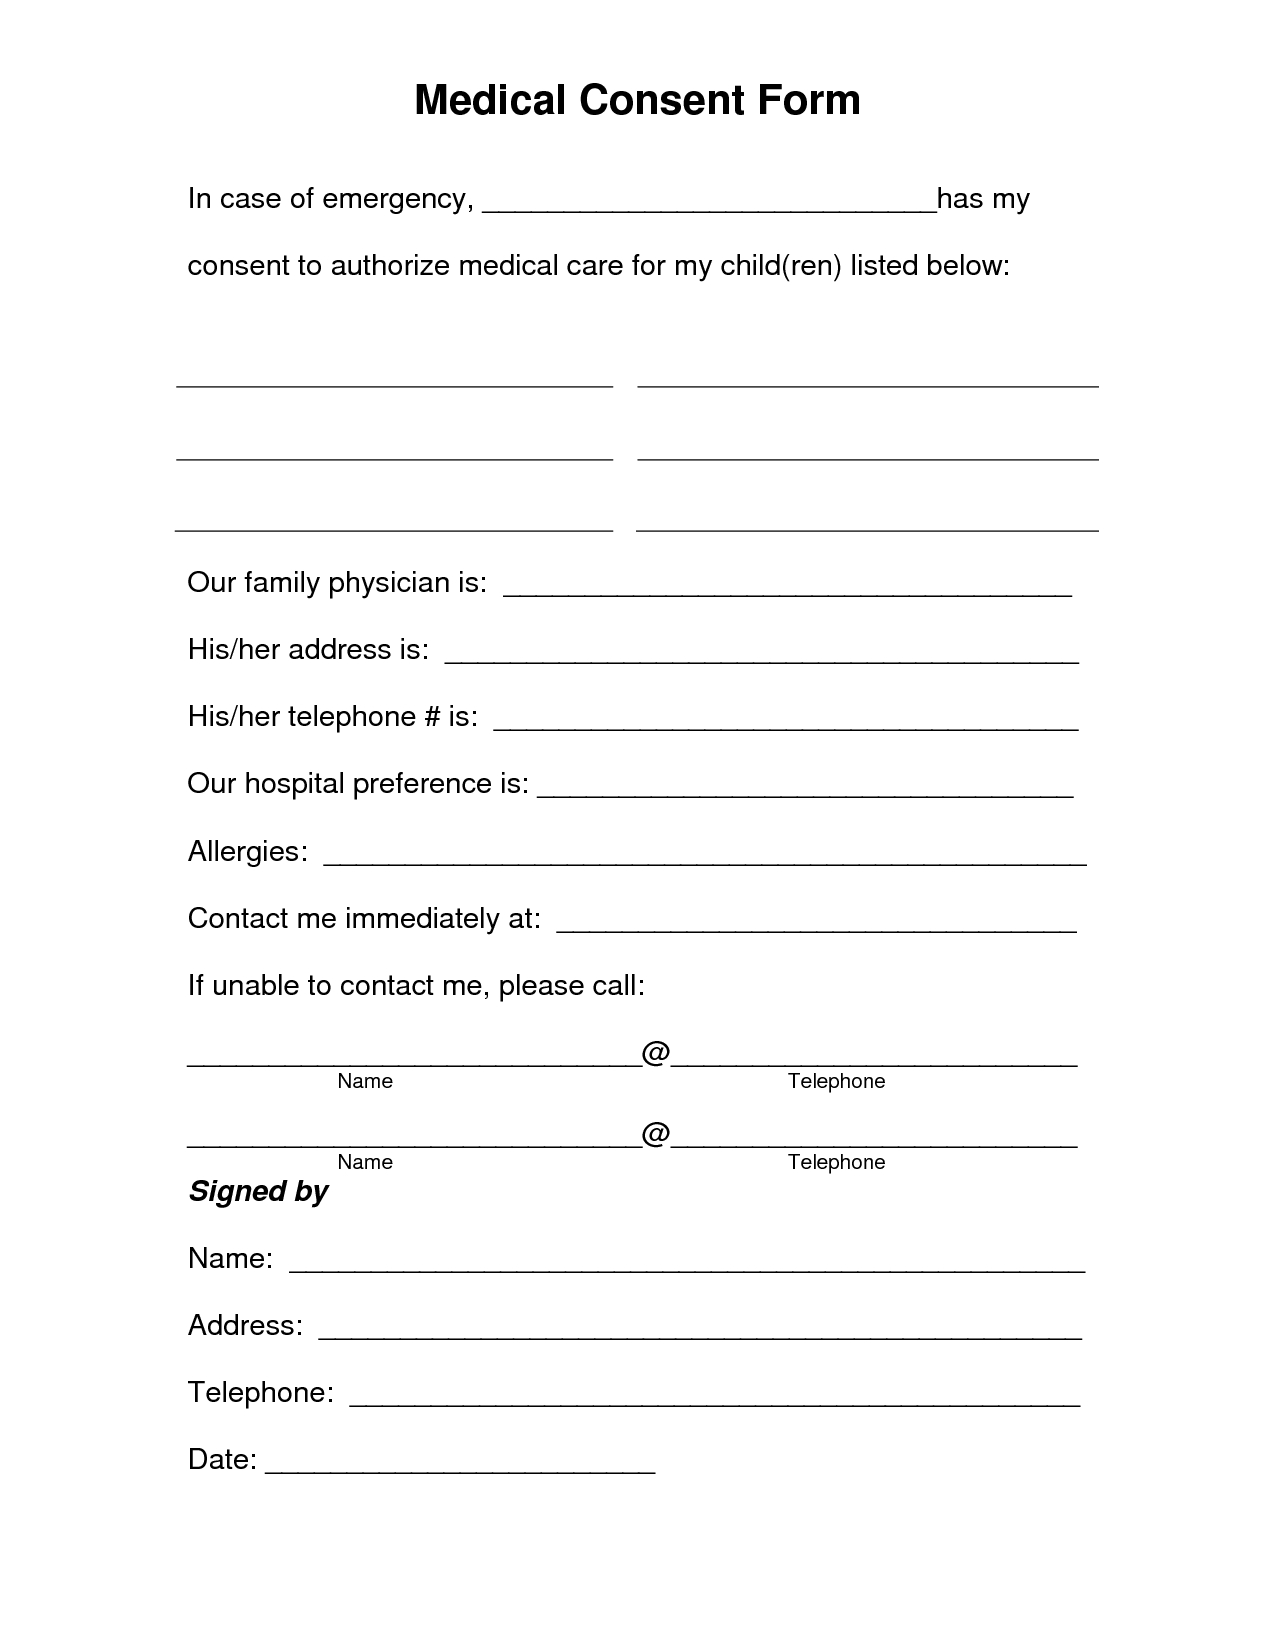 Free Printable Medical Consent Form   Free Medical Consent Form - Free Printable Daycare Forms